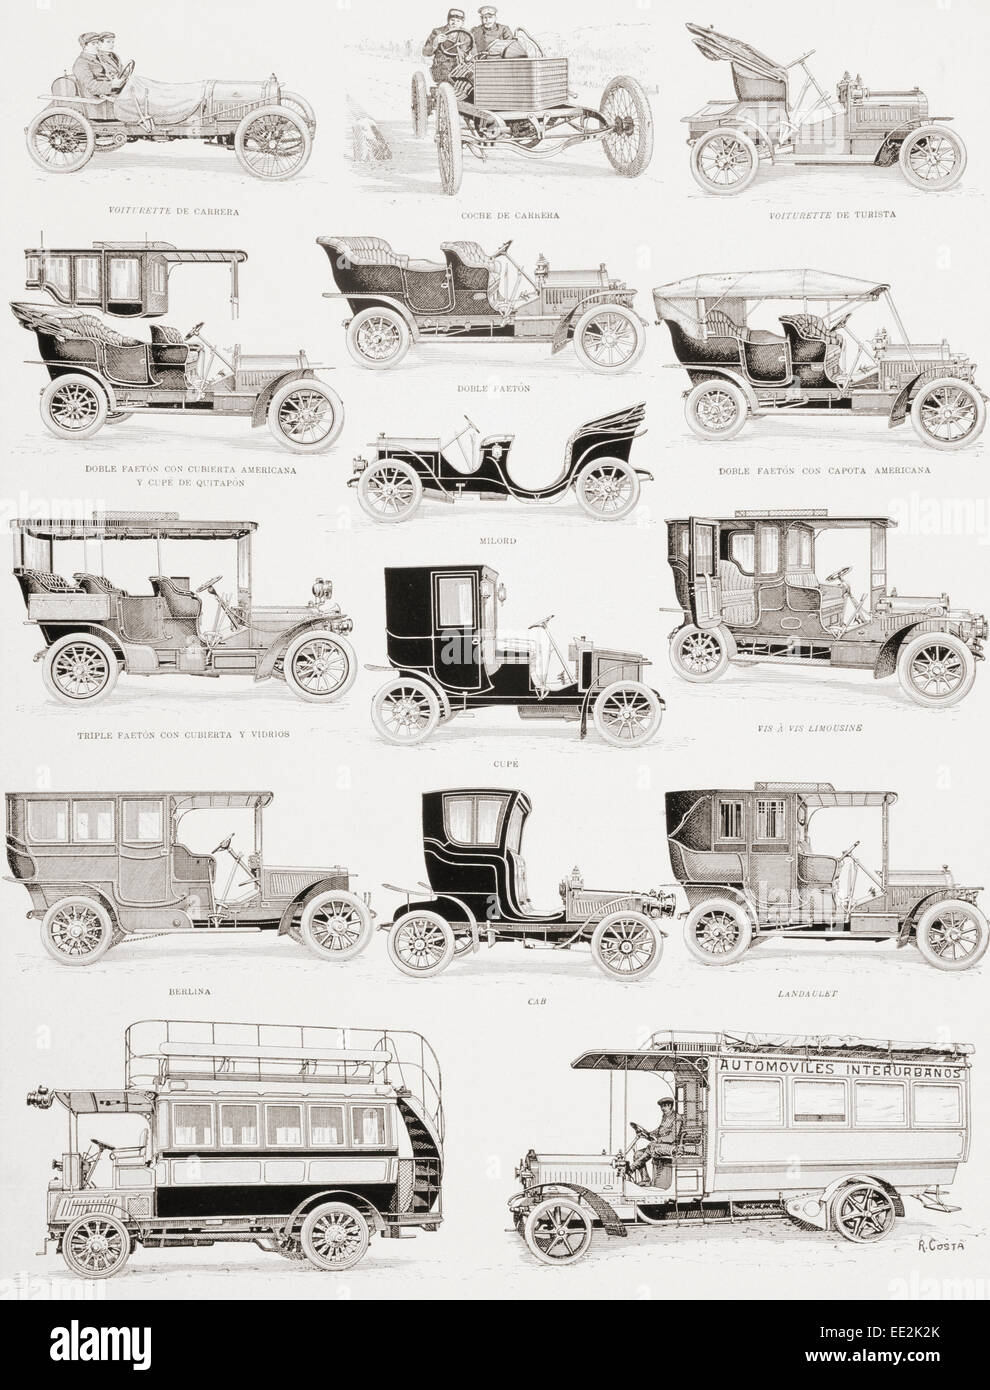 Motor cars and buses from the first decade of the 20th century.  Captions in Spanish language. - Stock Image